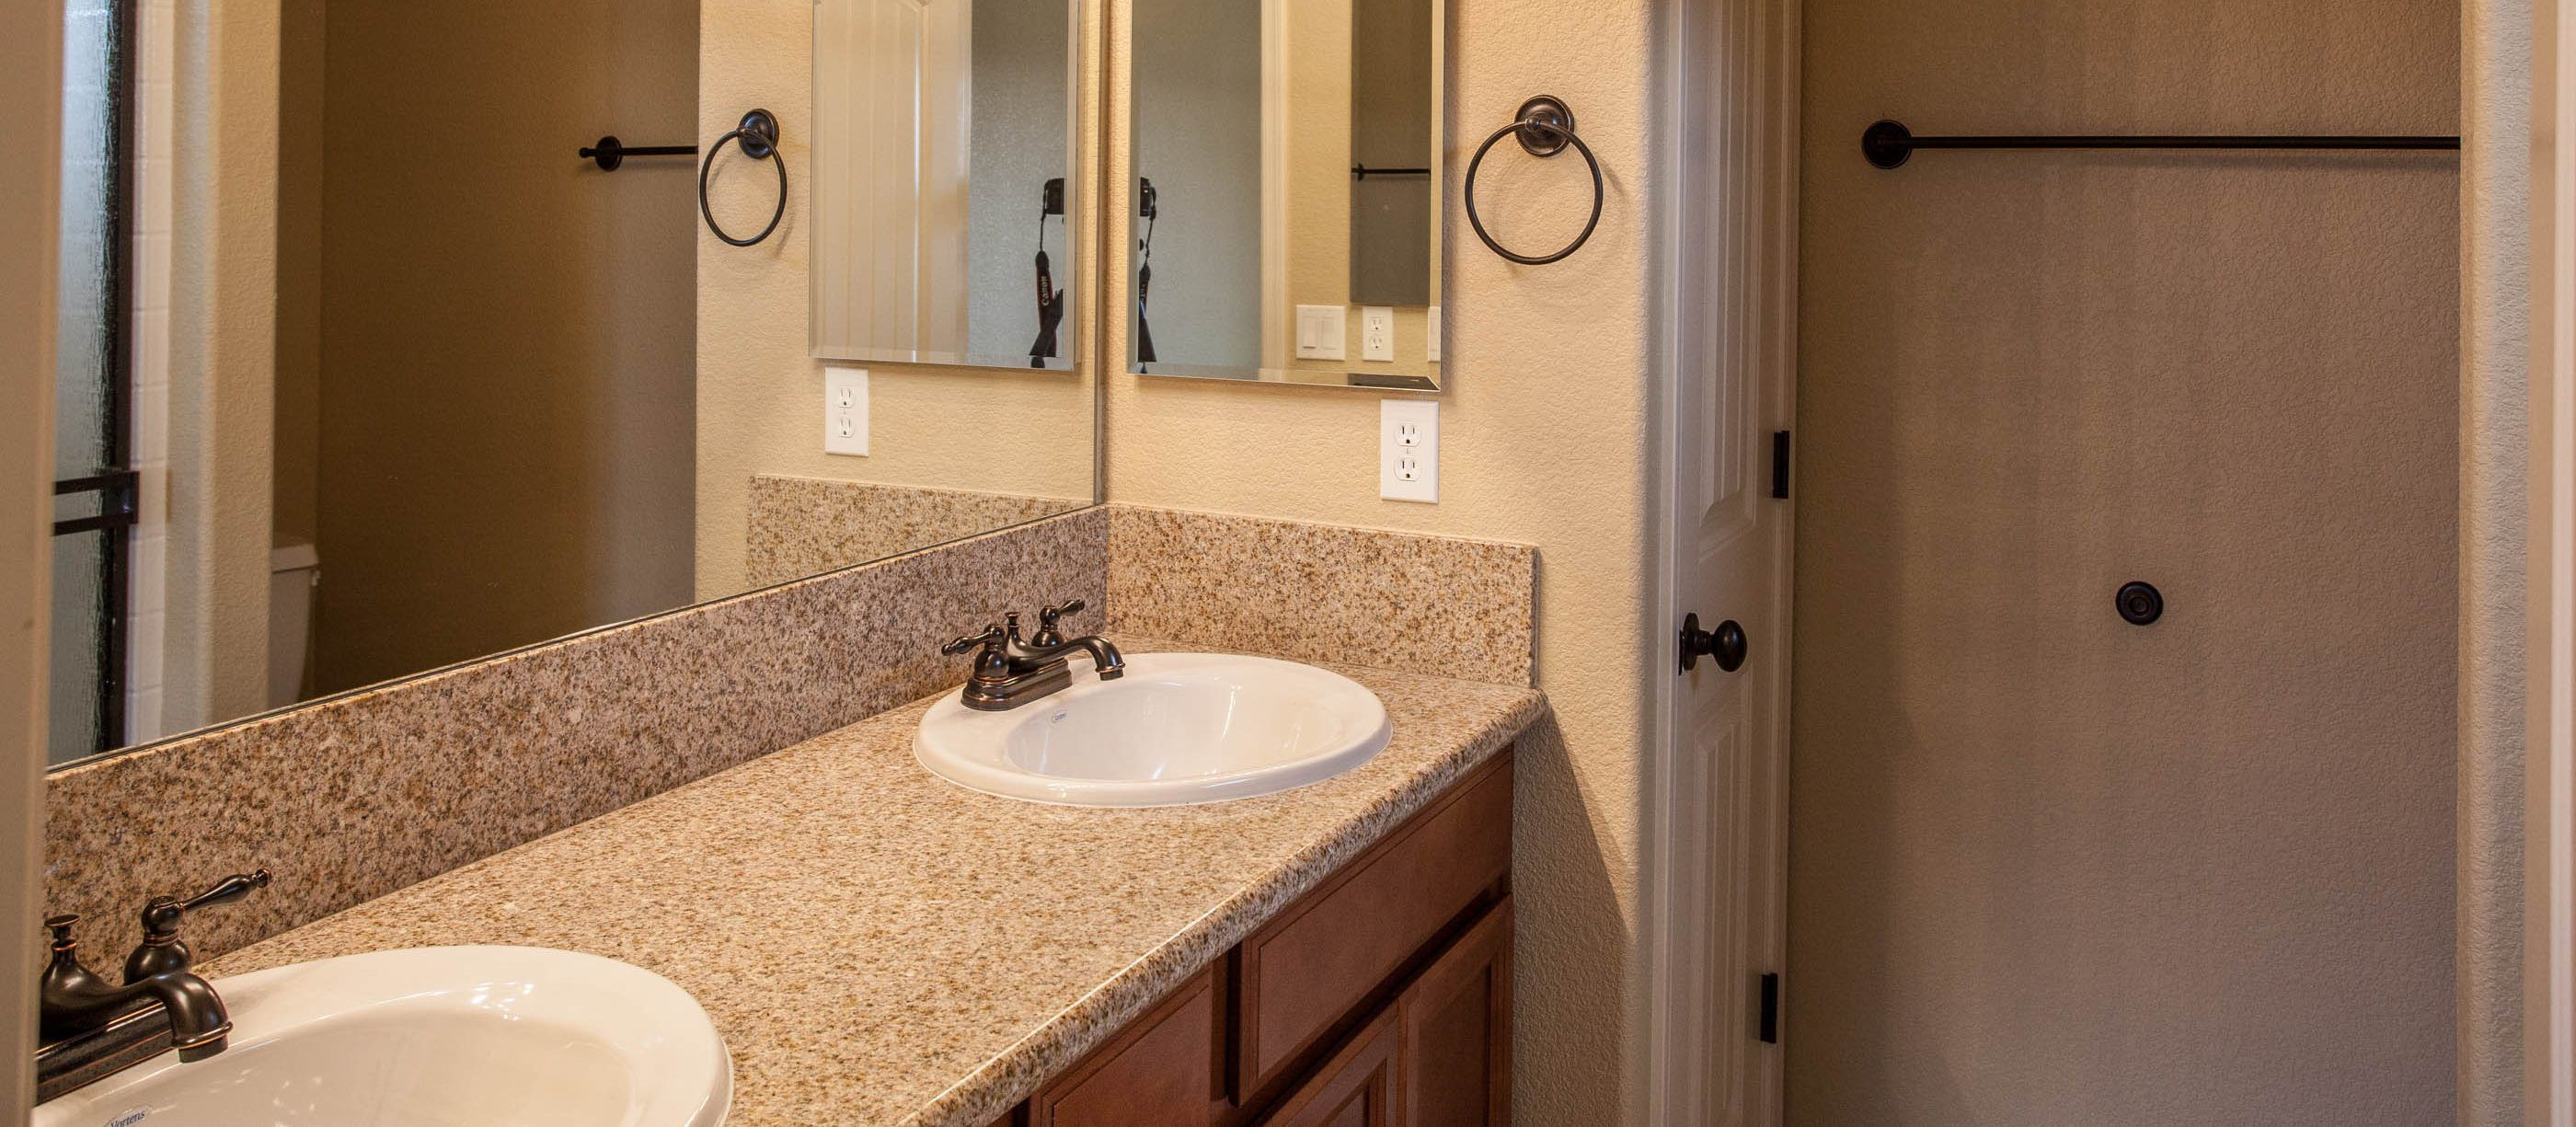 Bathroom featured in the Juniper 1410 By Angle Homes in Kingman-Lake Havasu City, AZ